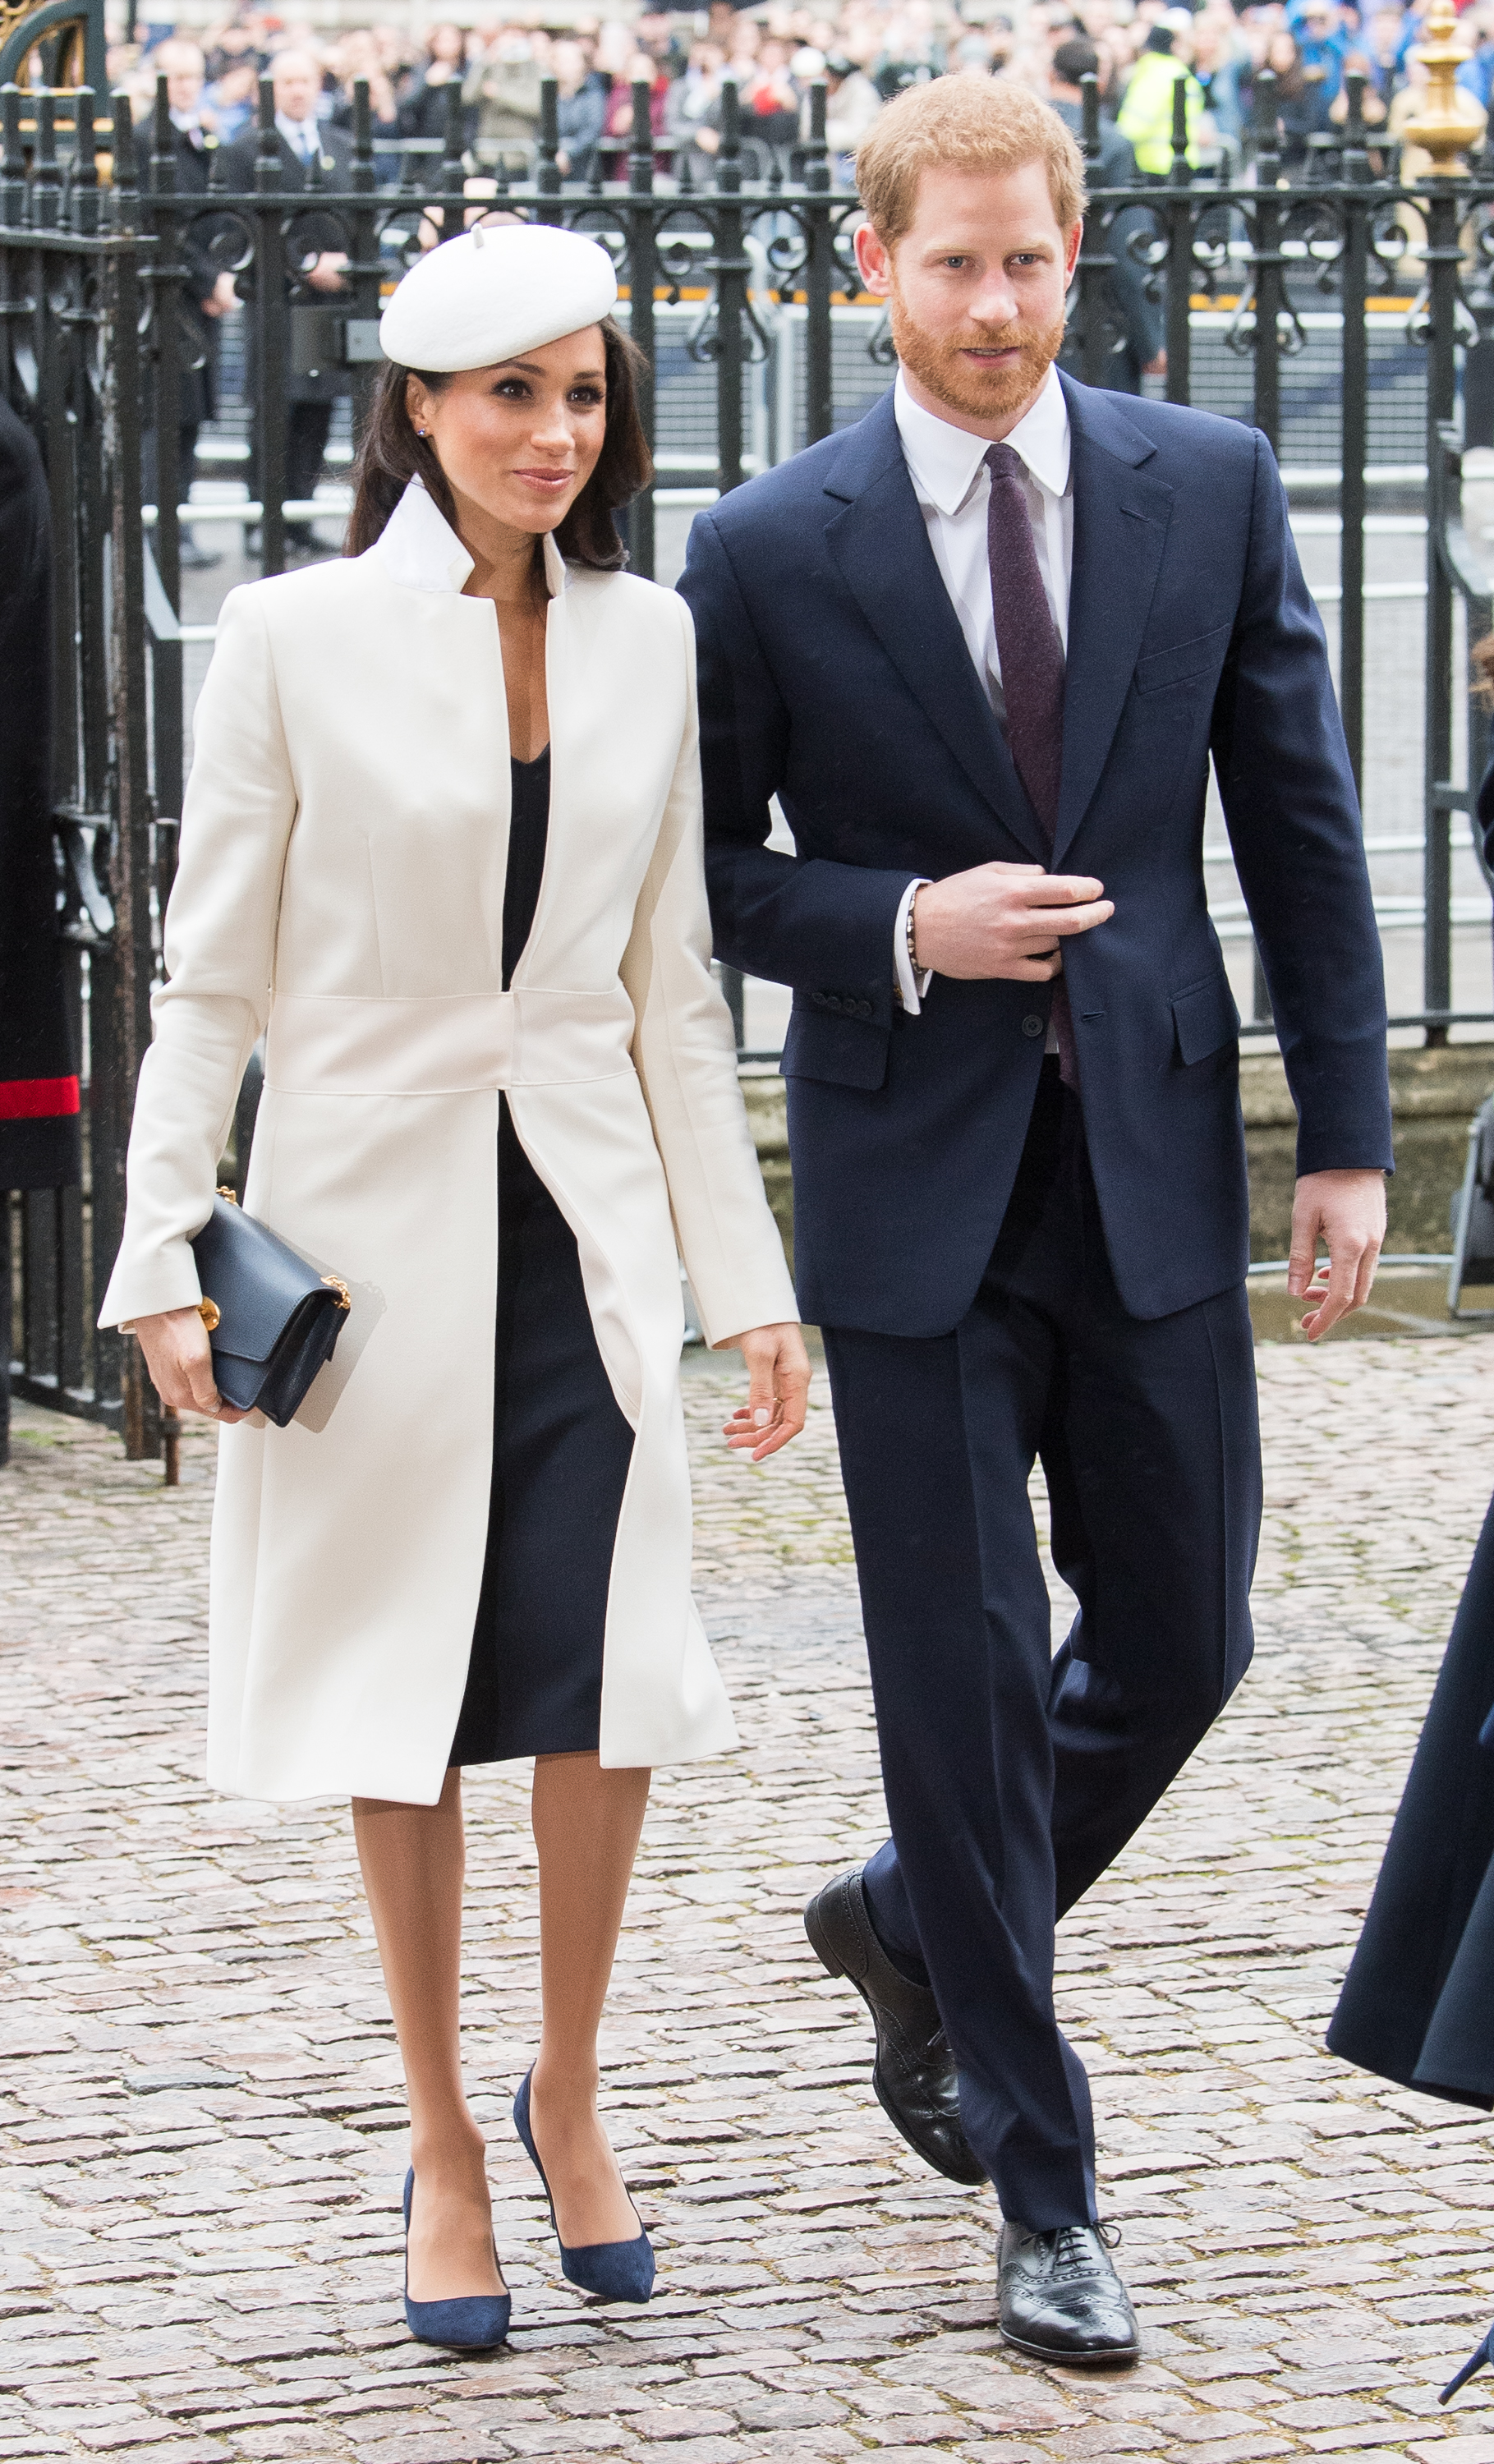 meghan markle prince harry 2018 commonwealth day